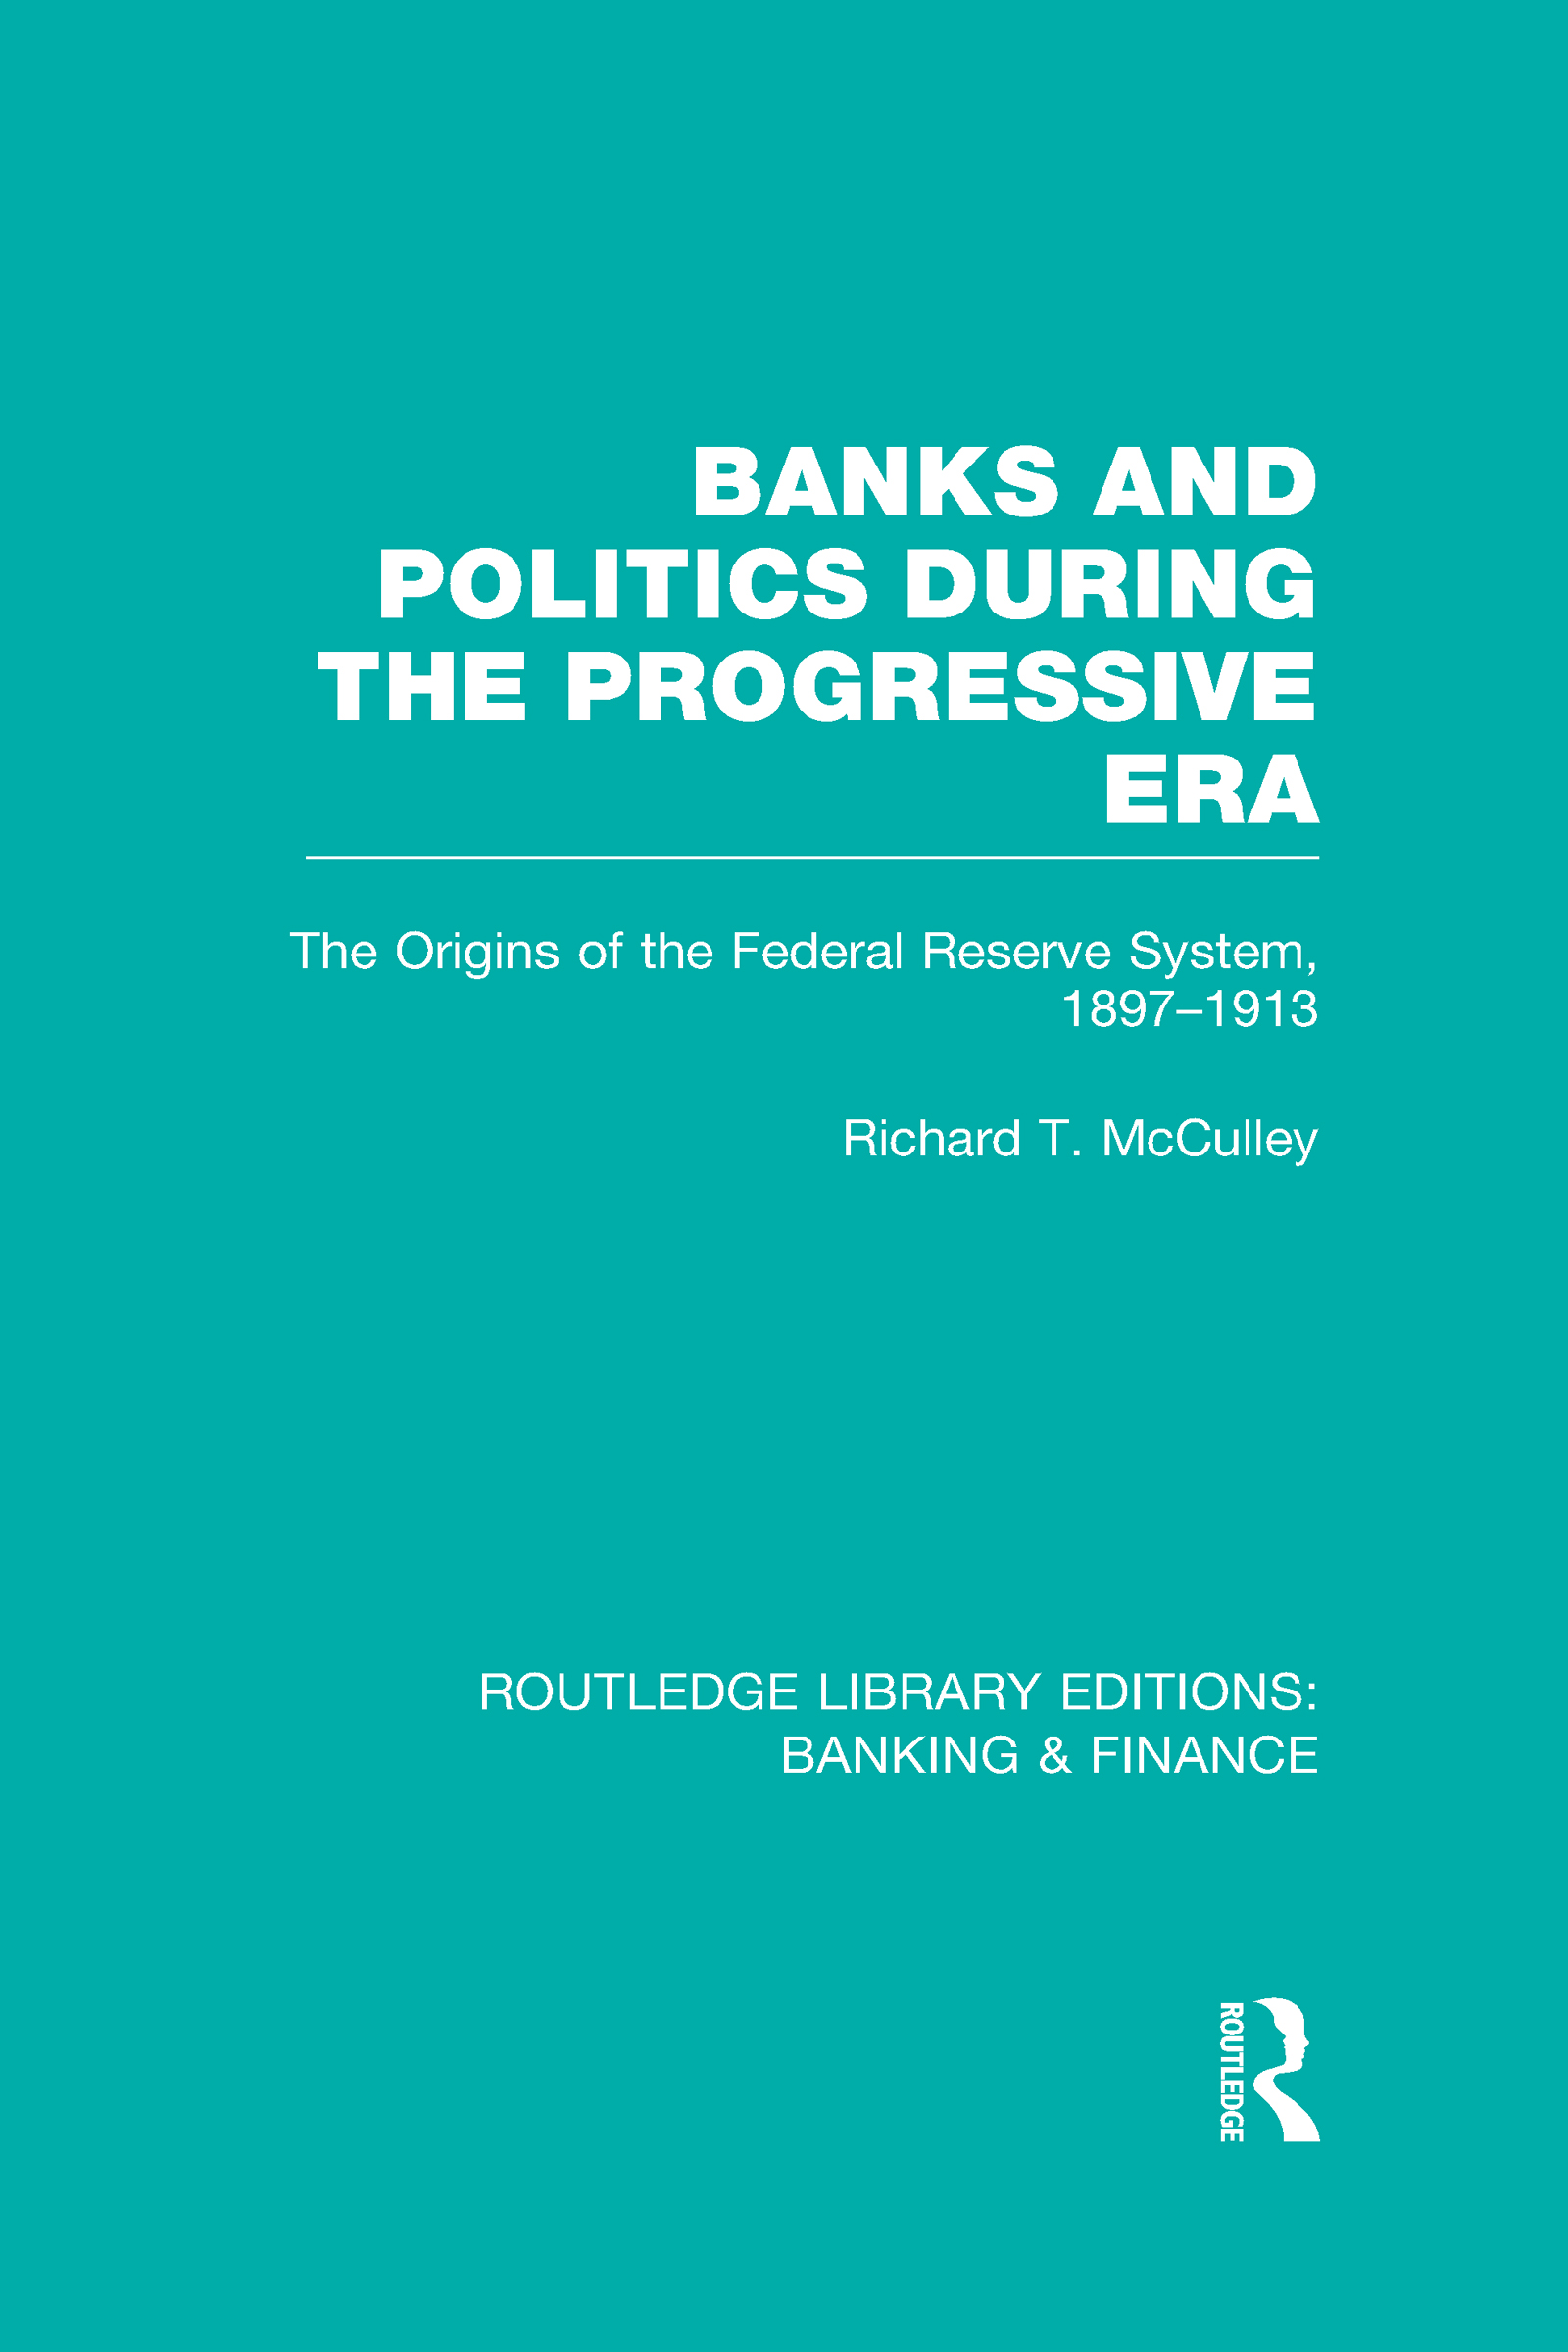 Banks and Politics During the Progressive Era (RLE Banking & Finance) (Hardback) book cover